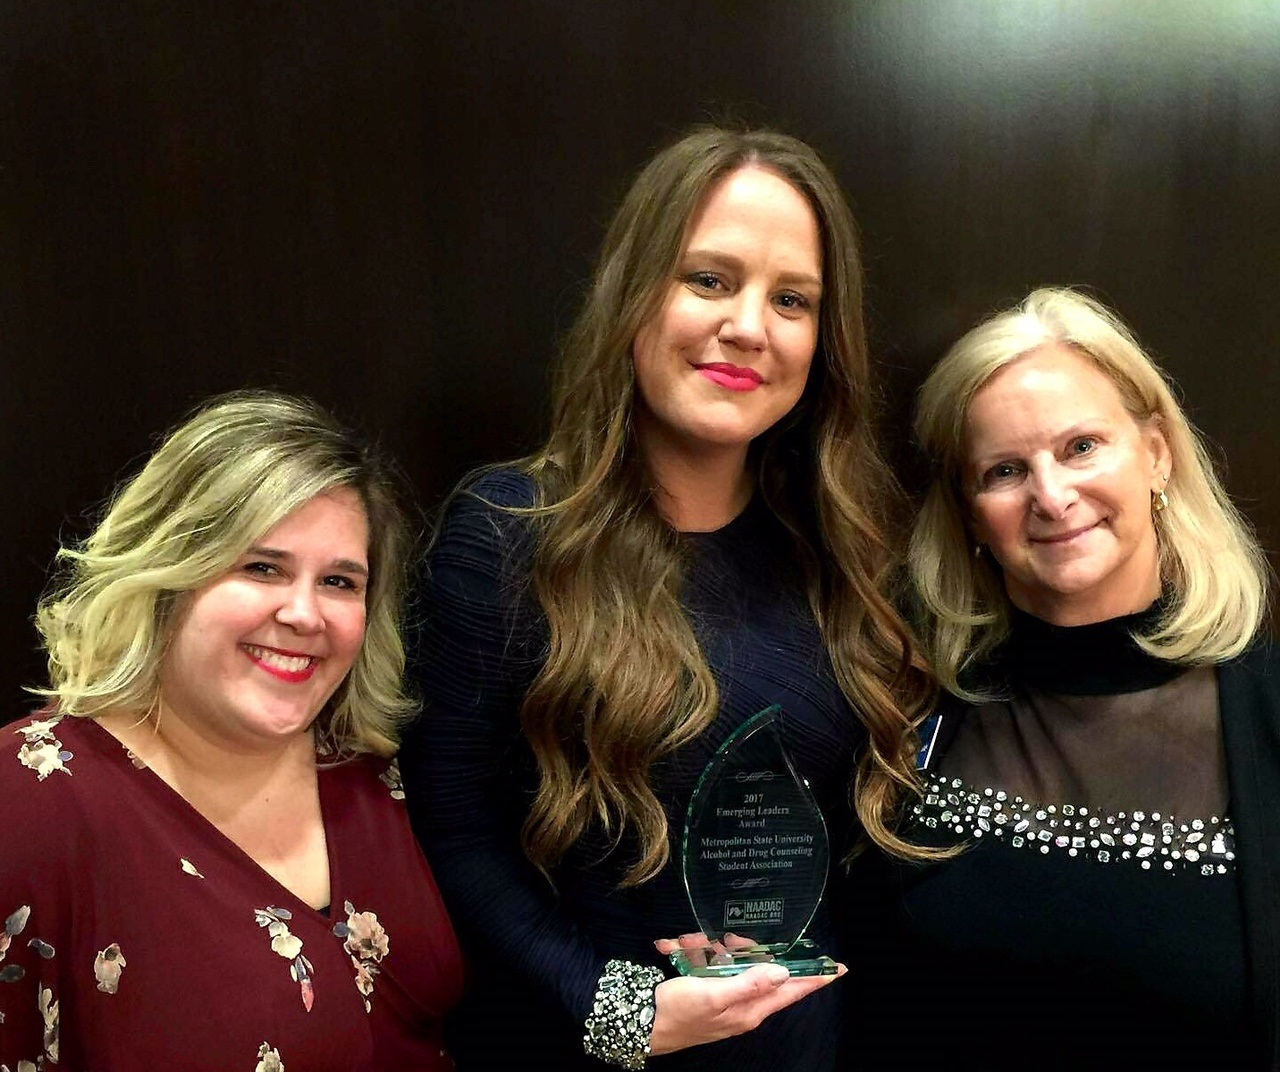 Addiction counseling students win national award